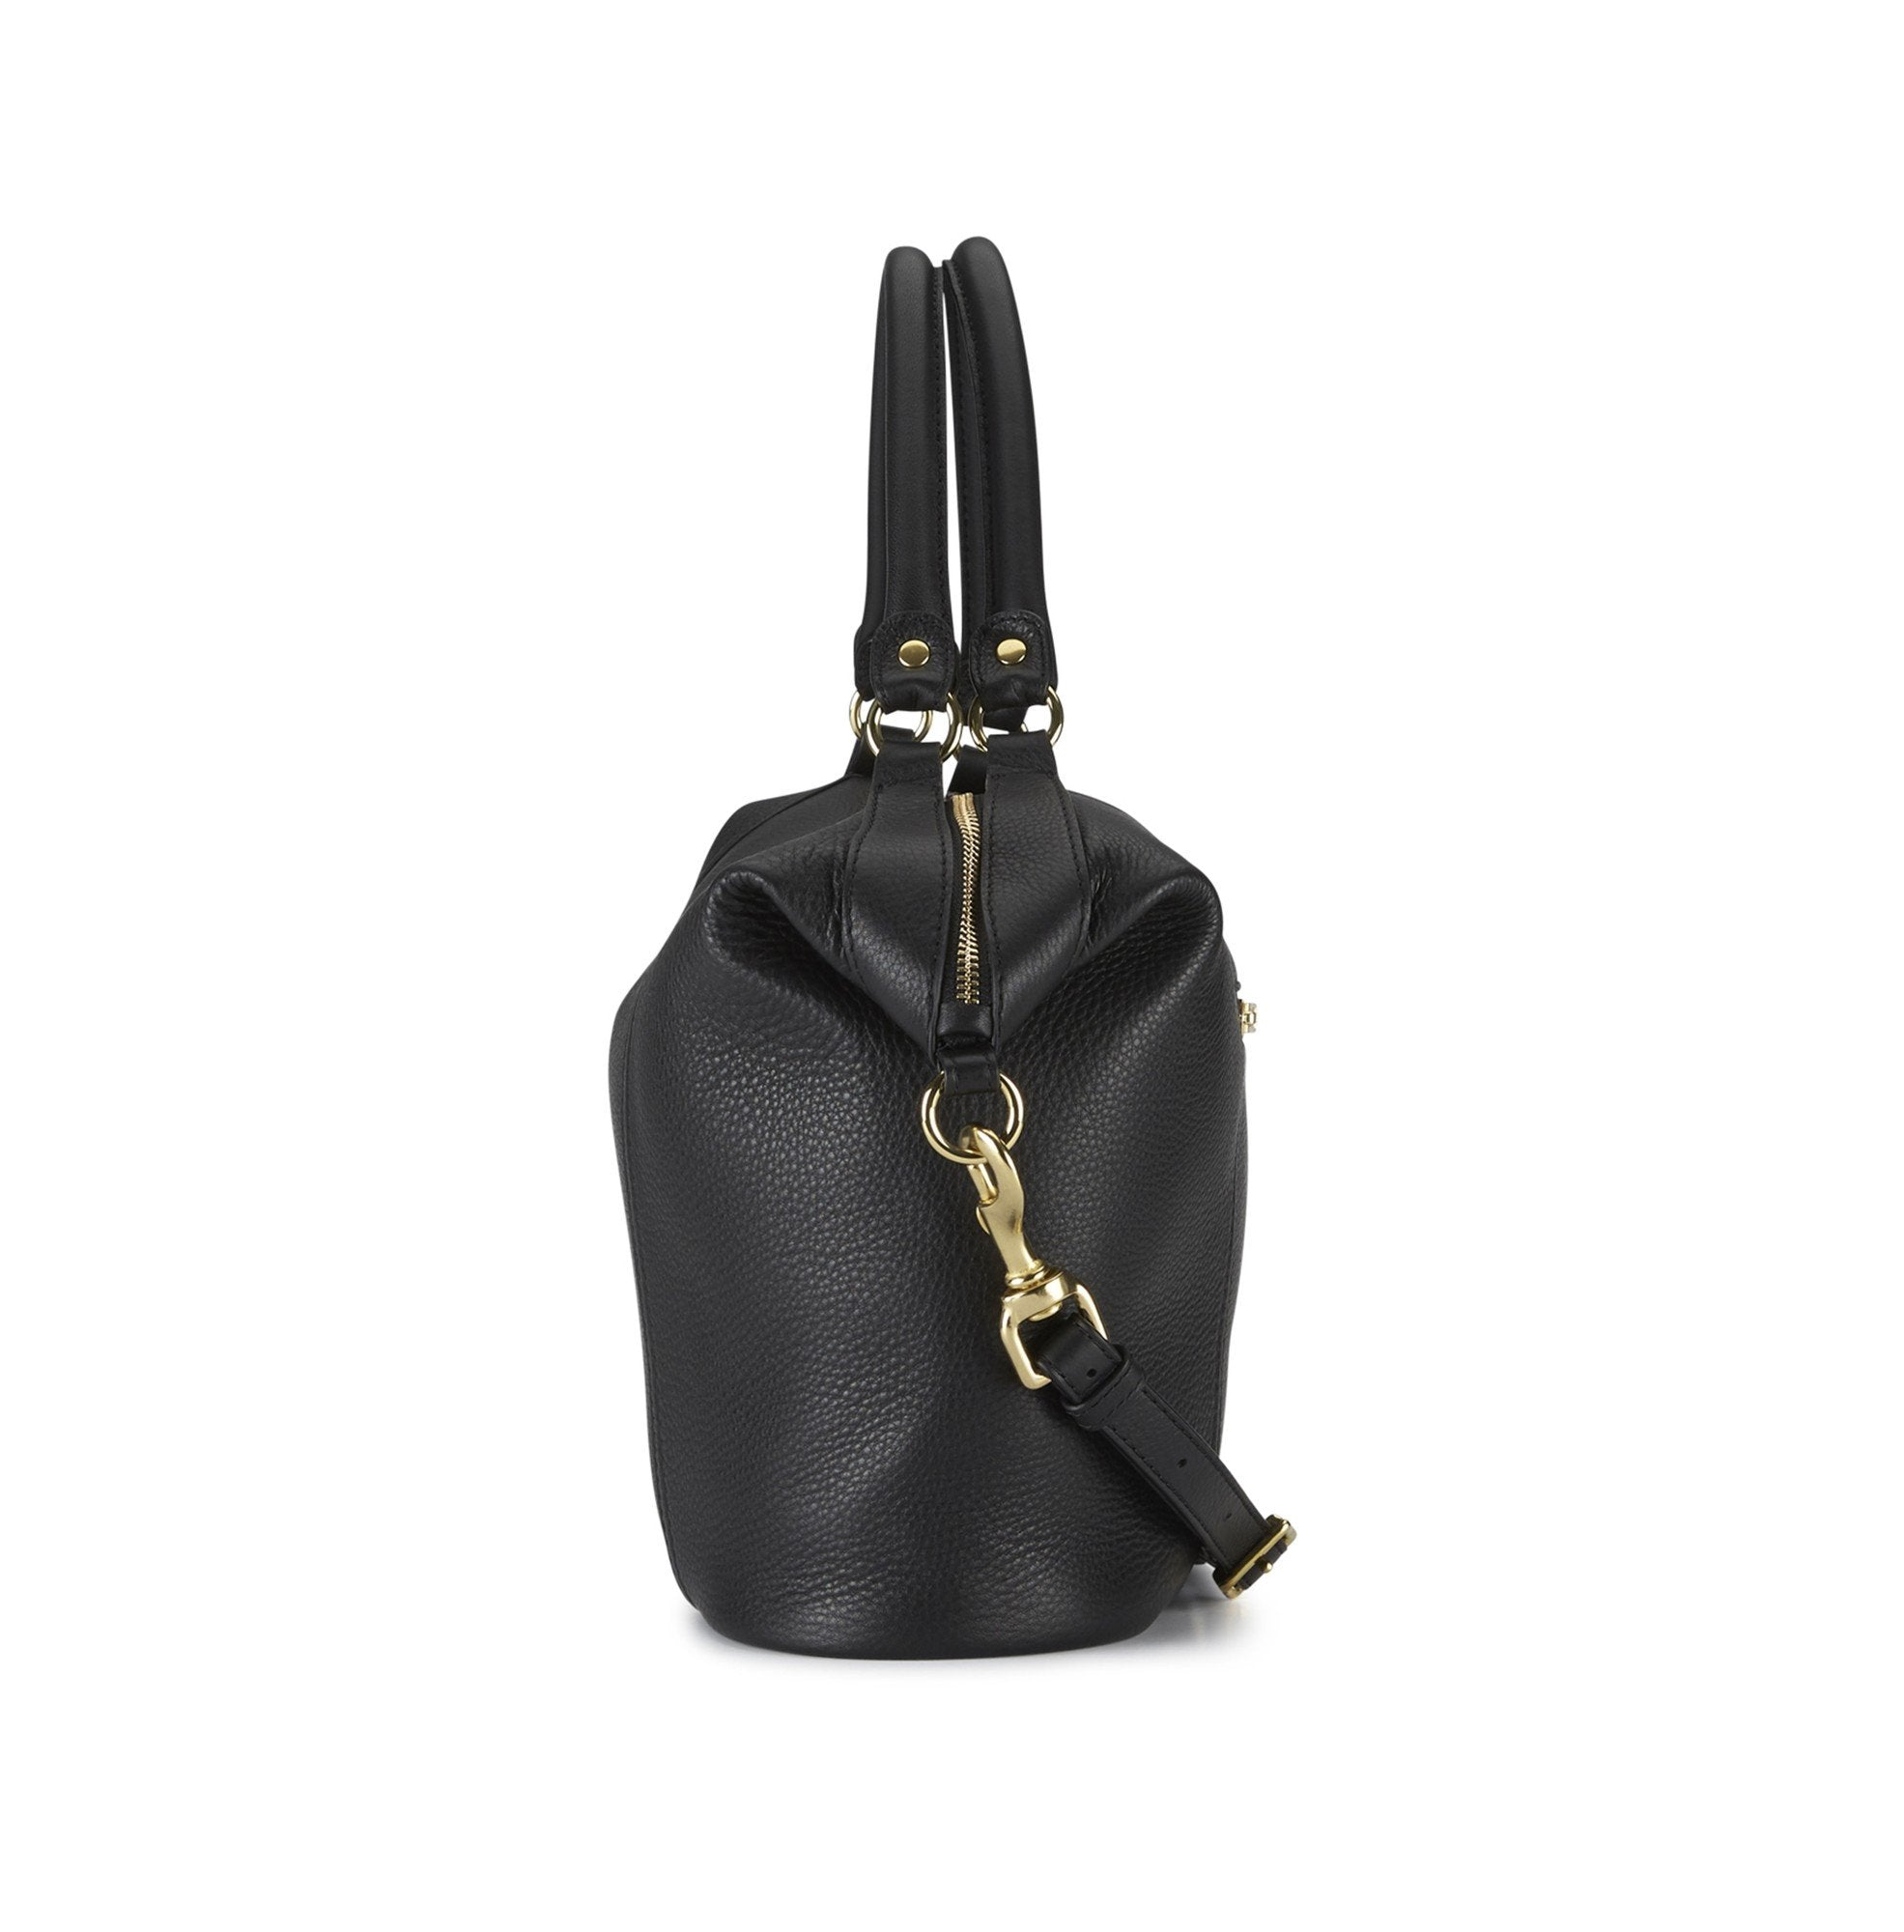 DEADLY PONIES BAG BLACK Deadly Ponies | Mr Fill N Zip - Black